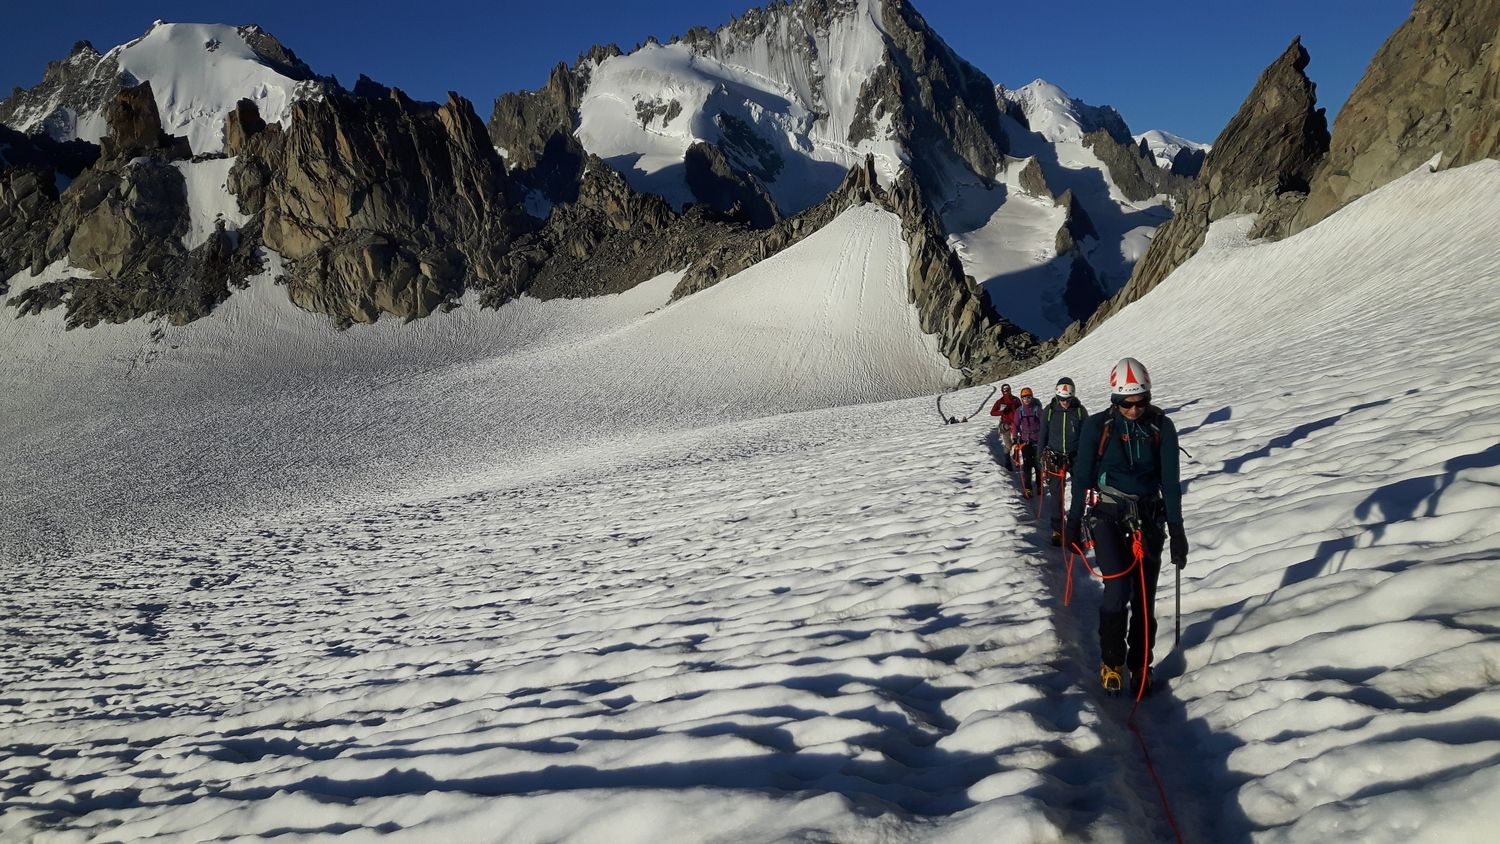 Crossing the Col Superieur du Tour on to the Trient Plateau with the Aiguille du Chardonnet behind